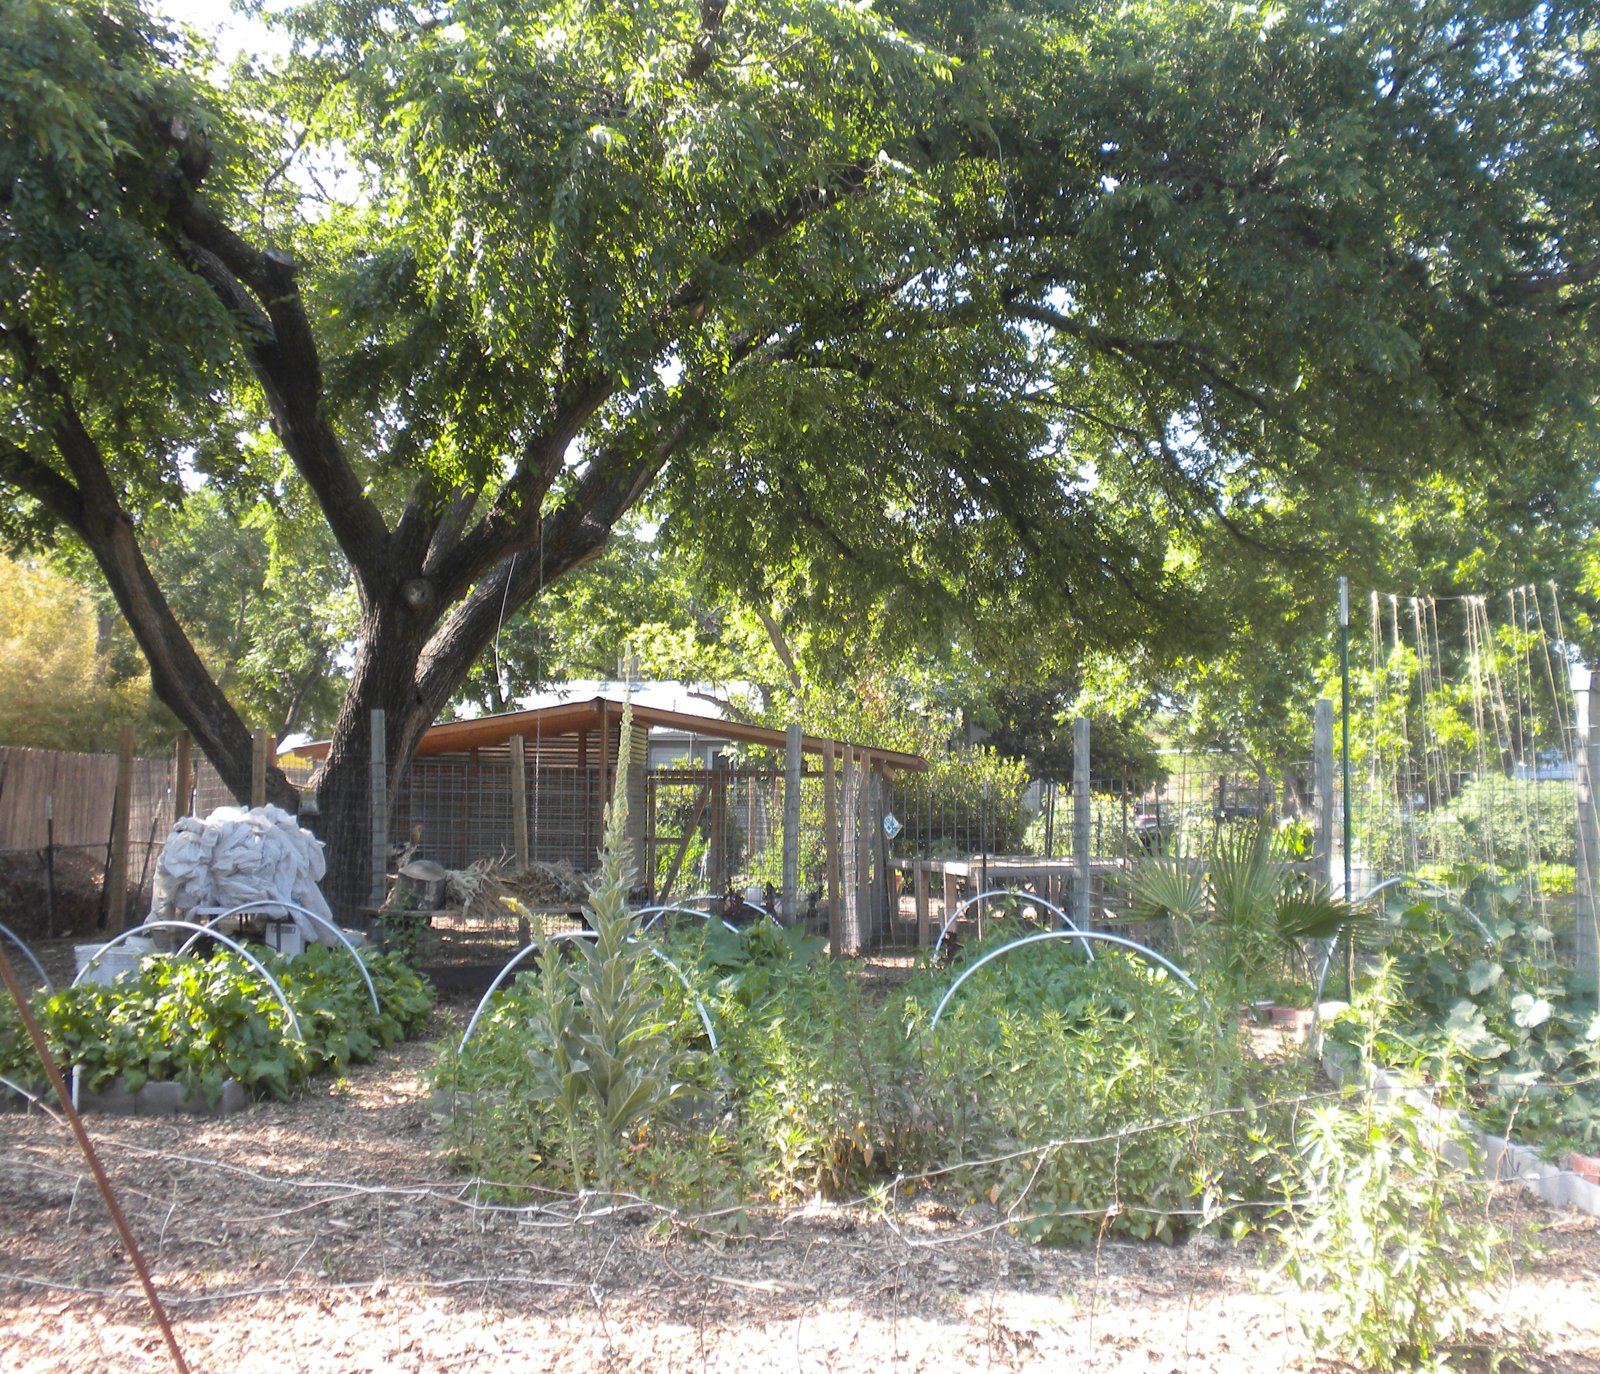 We had hoped to go to the Eastside Cafe but Mother's Day made for hour-plus waits. We were, however, able to walk around the gardens, from which the restaurant sources much of its produce.  Three Days in Austin, Texas by Miyoko Ohtake